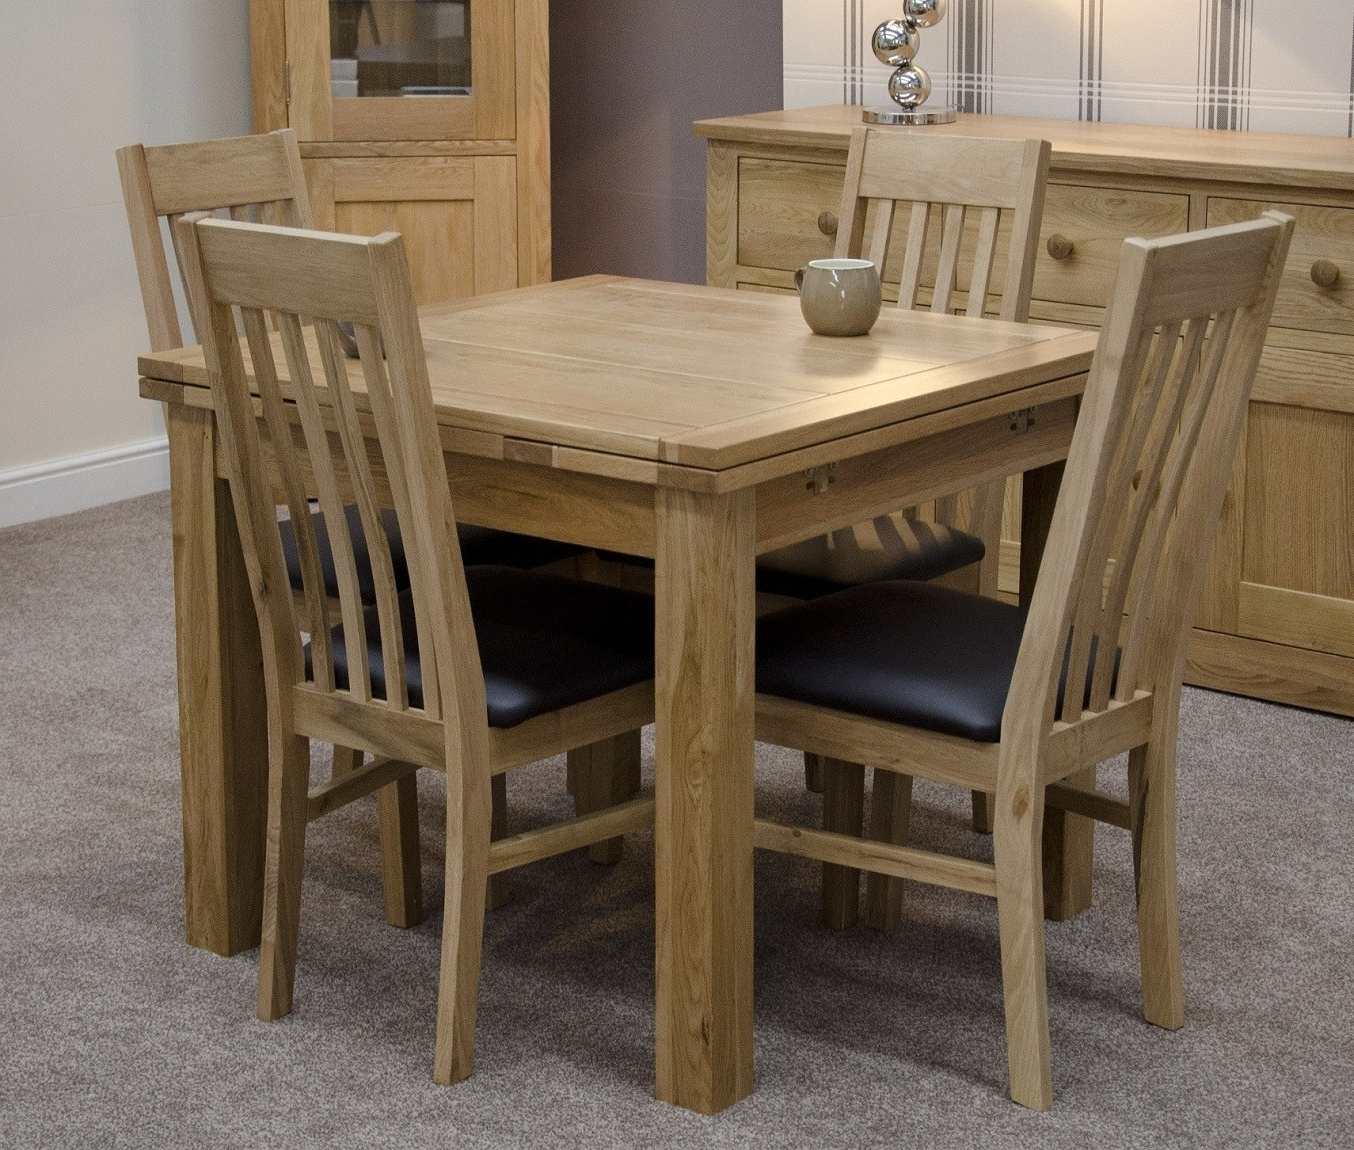 Oak Furniture Uk (View 5 of 25)